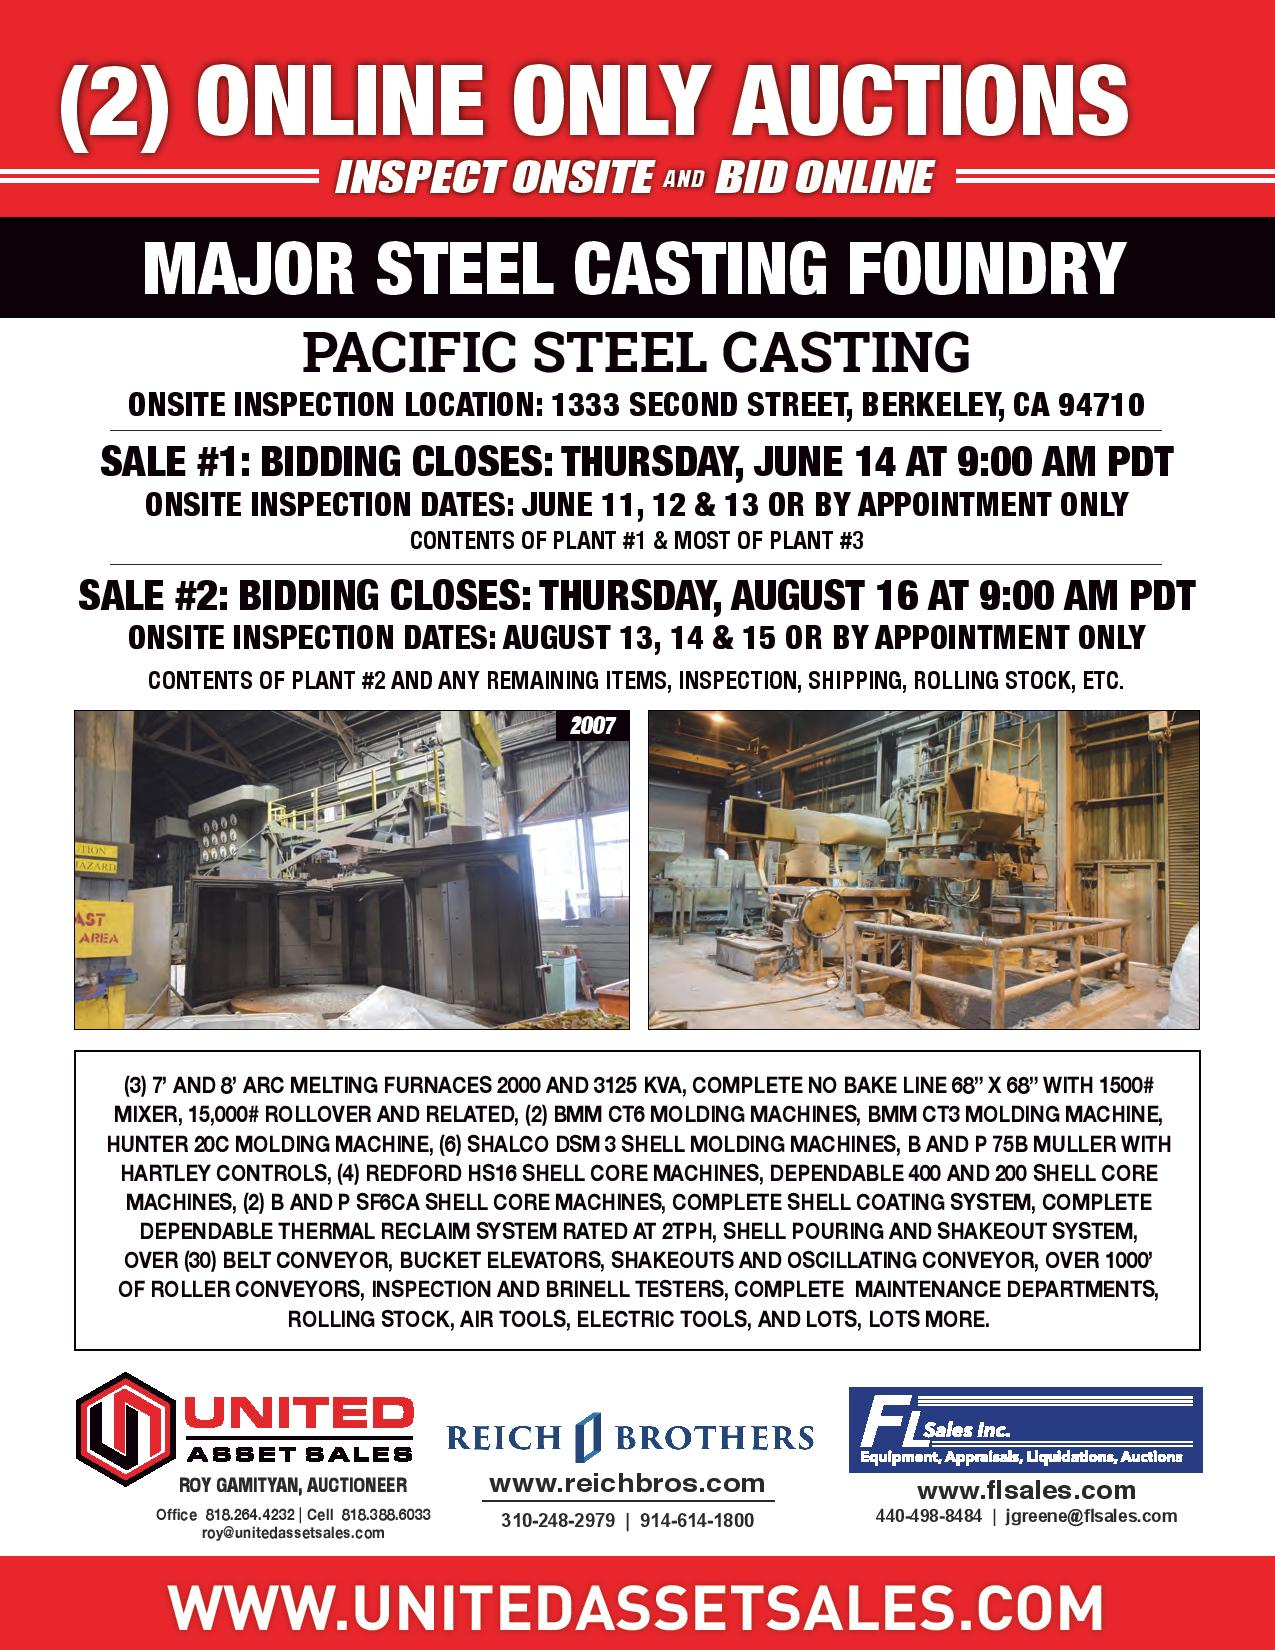 STEEL AND CASTING FOUNDRY - CONTENTS OF PLANT #2 AND ANY REMAINING ITEMS, INSPECTION, SHIPPING, ROLLING STOCK, ETC.